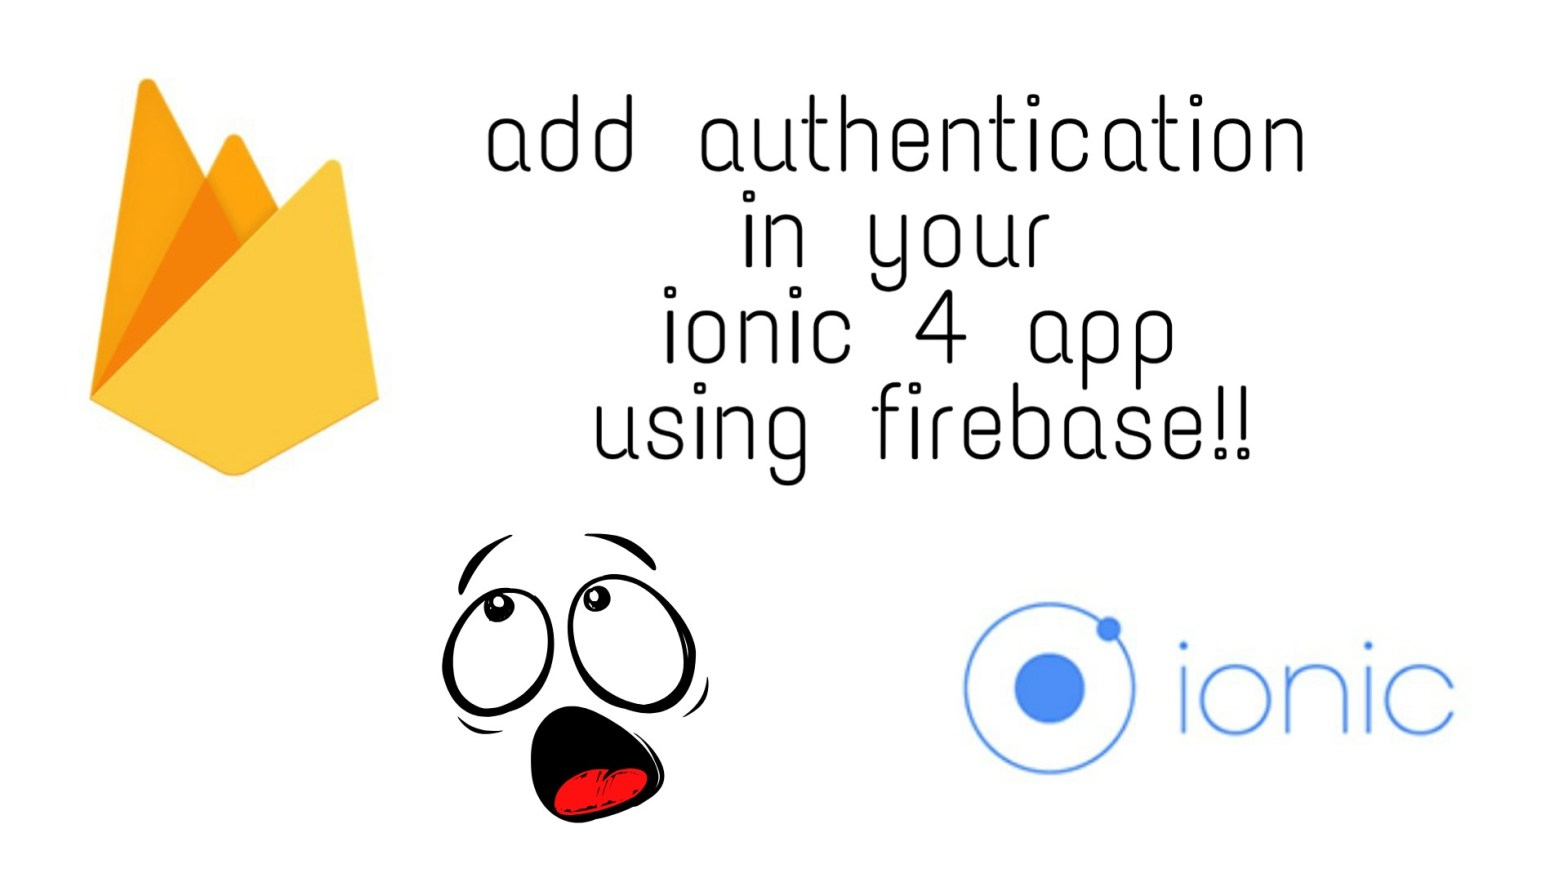 Create login system in ionic 4 with firebase | OvpV